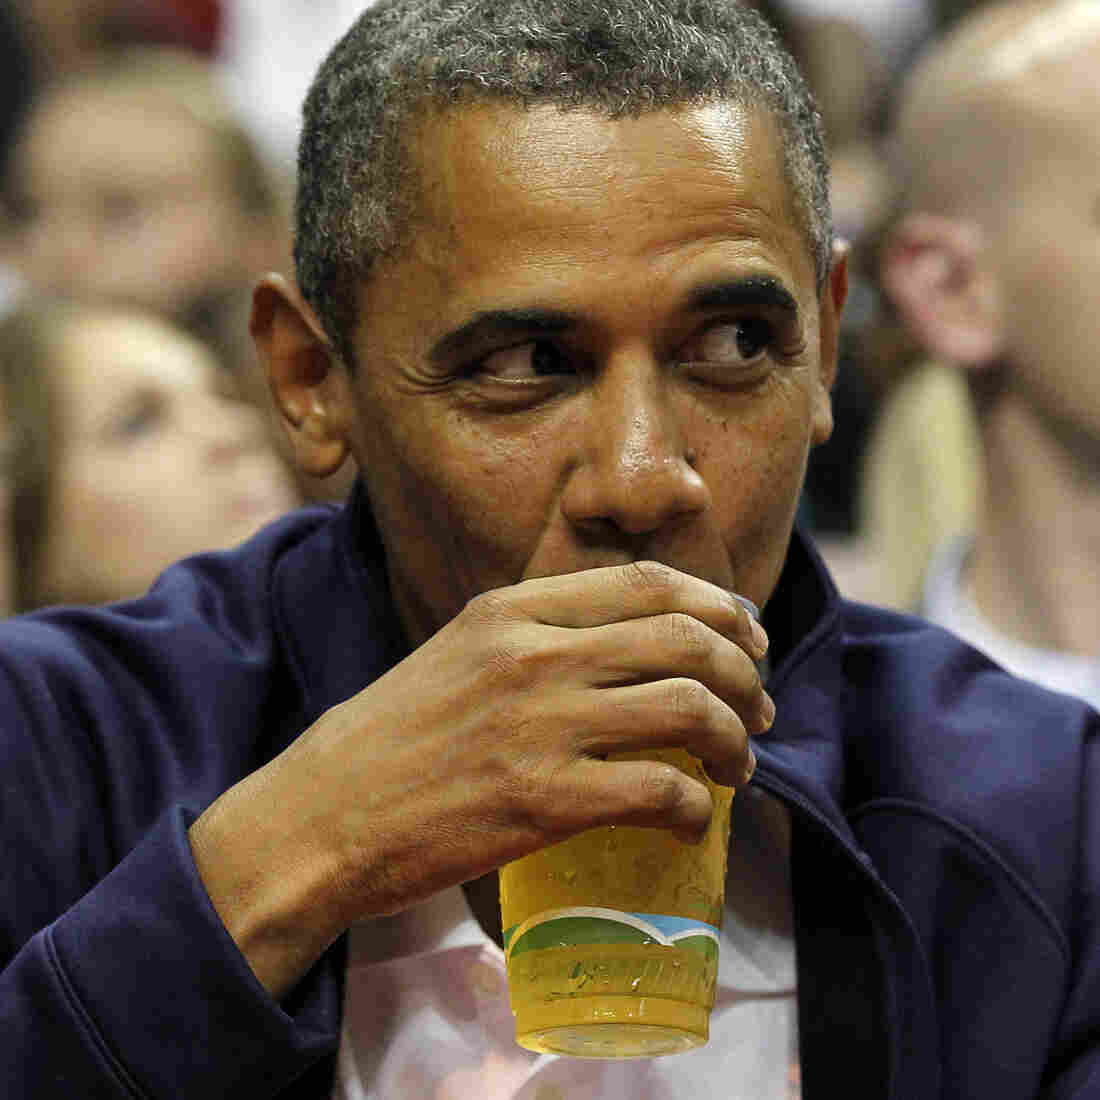 Four More Beers? Well, Here Are Two From The White House